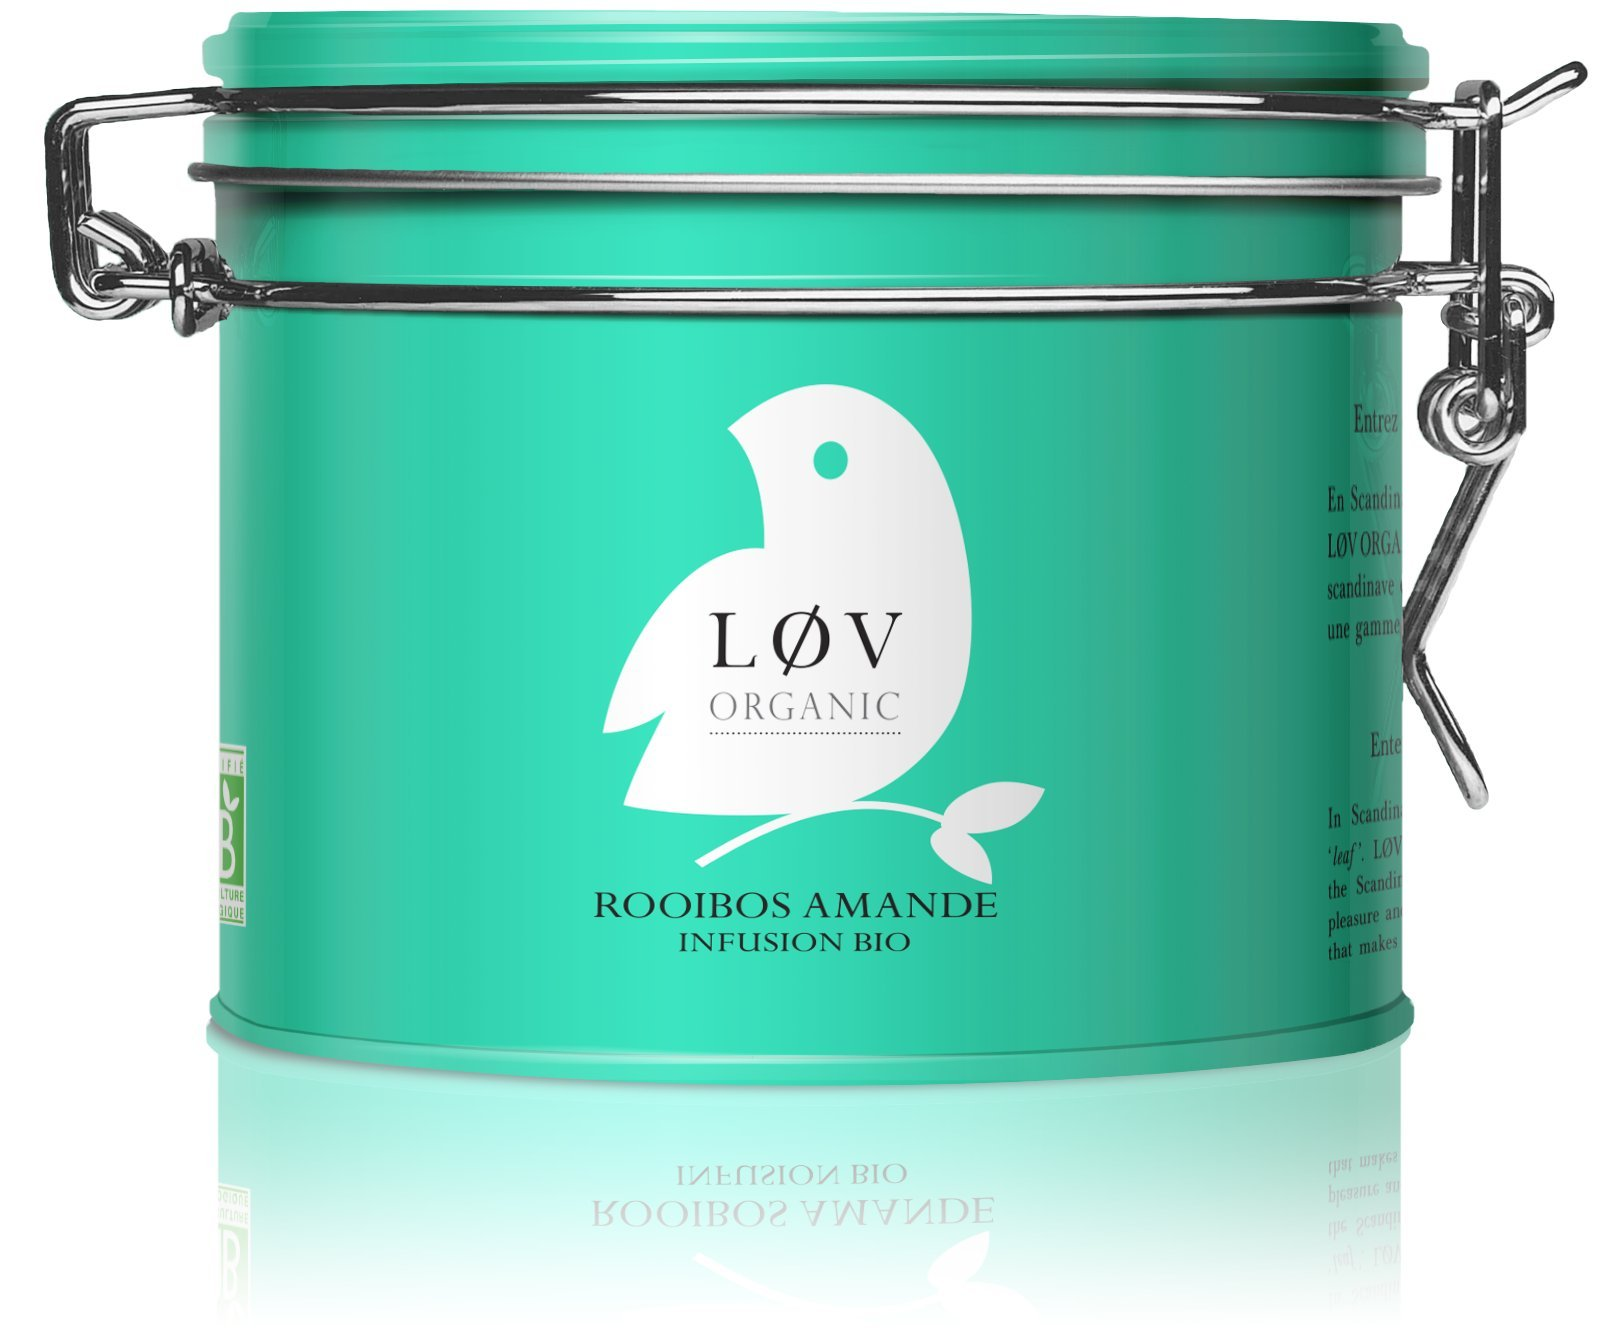 Løv Organic Almond Rooibos - Enjoy Mellow Organic Almond Blend With Relaxing and Antioxidant Properties Perfect for Tea Lovers (3.5oz Tin 40 Servings)